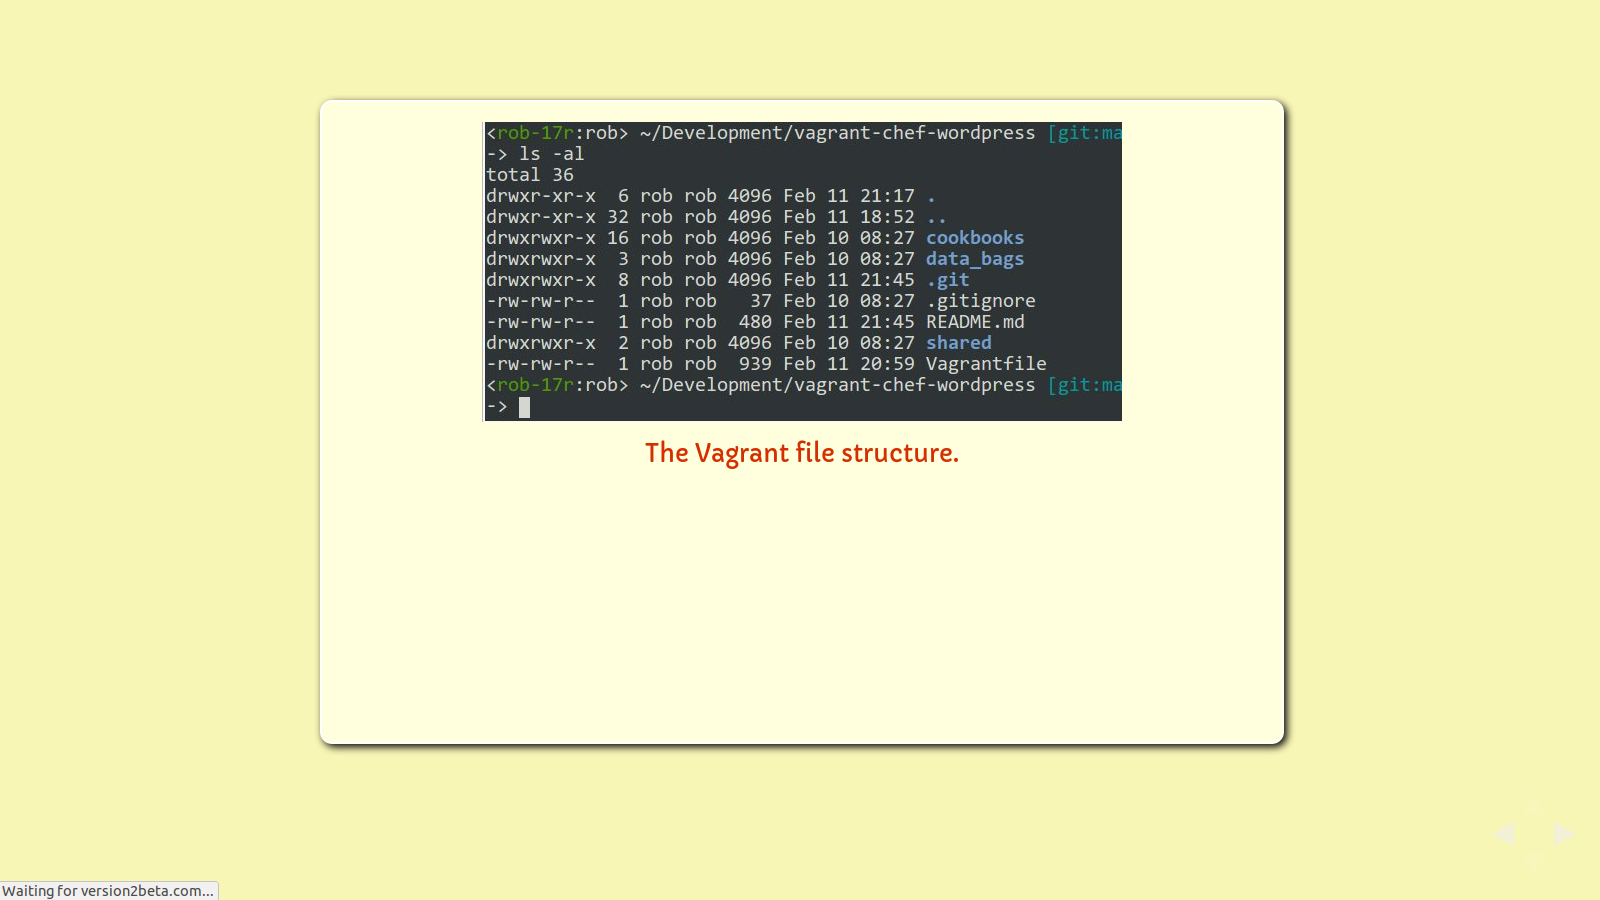 Slide: Vagrant directories from vagrant-chef-wordpress